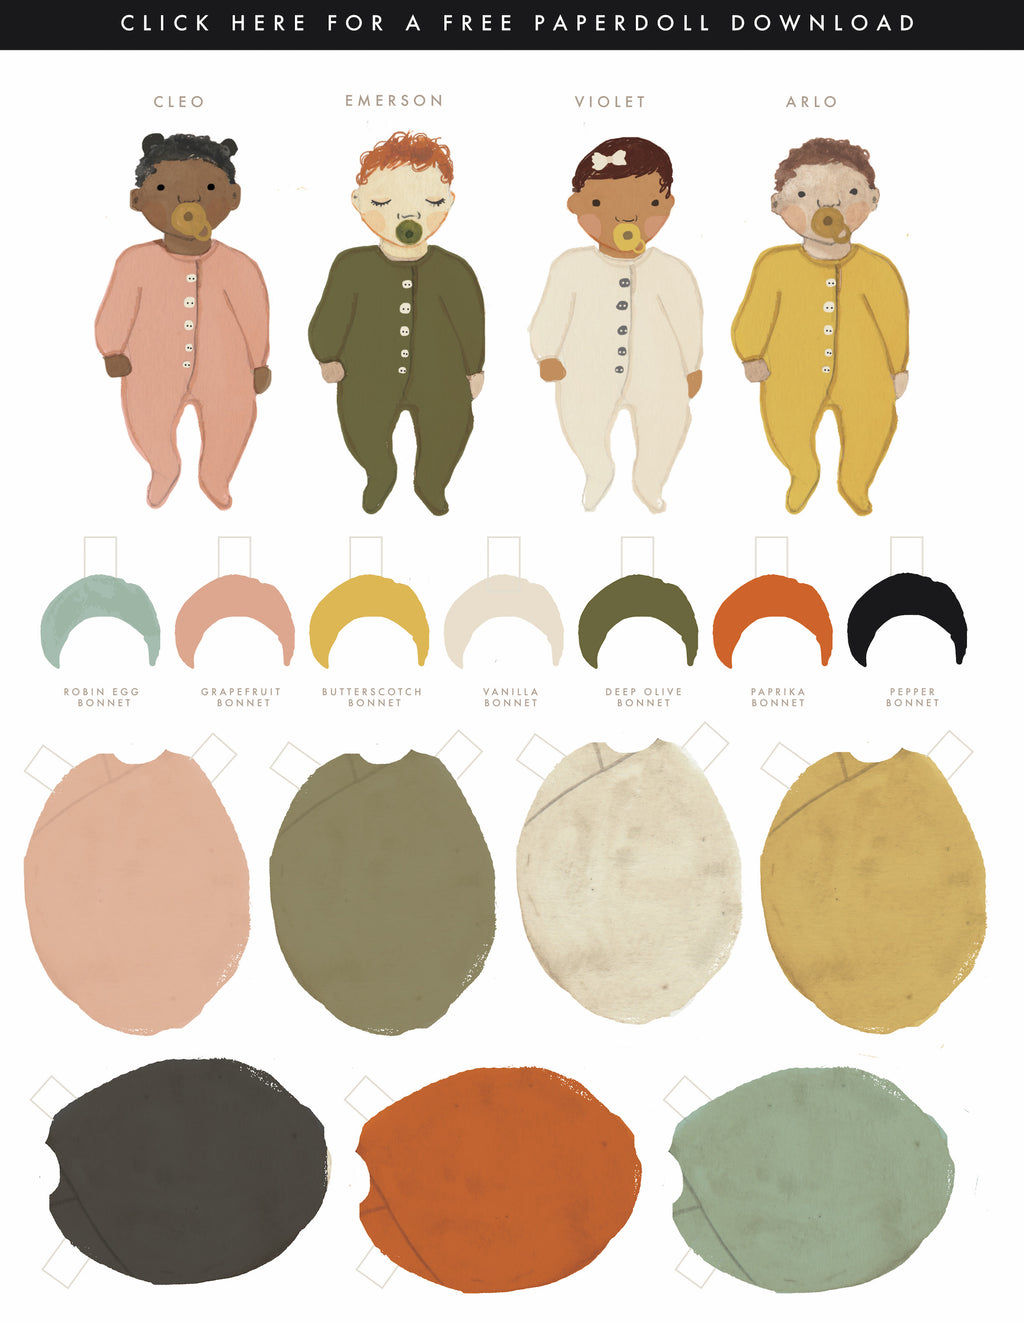 Free Paper Doll Download